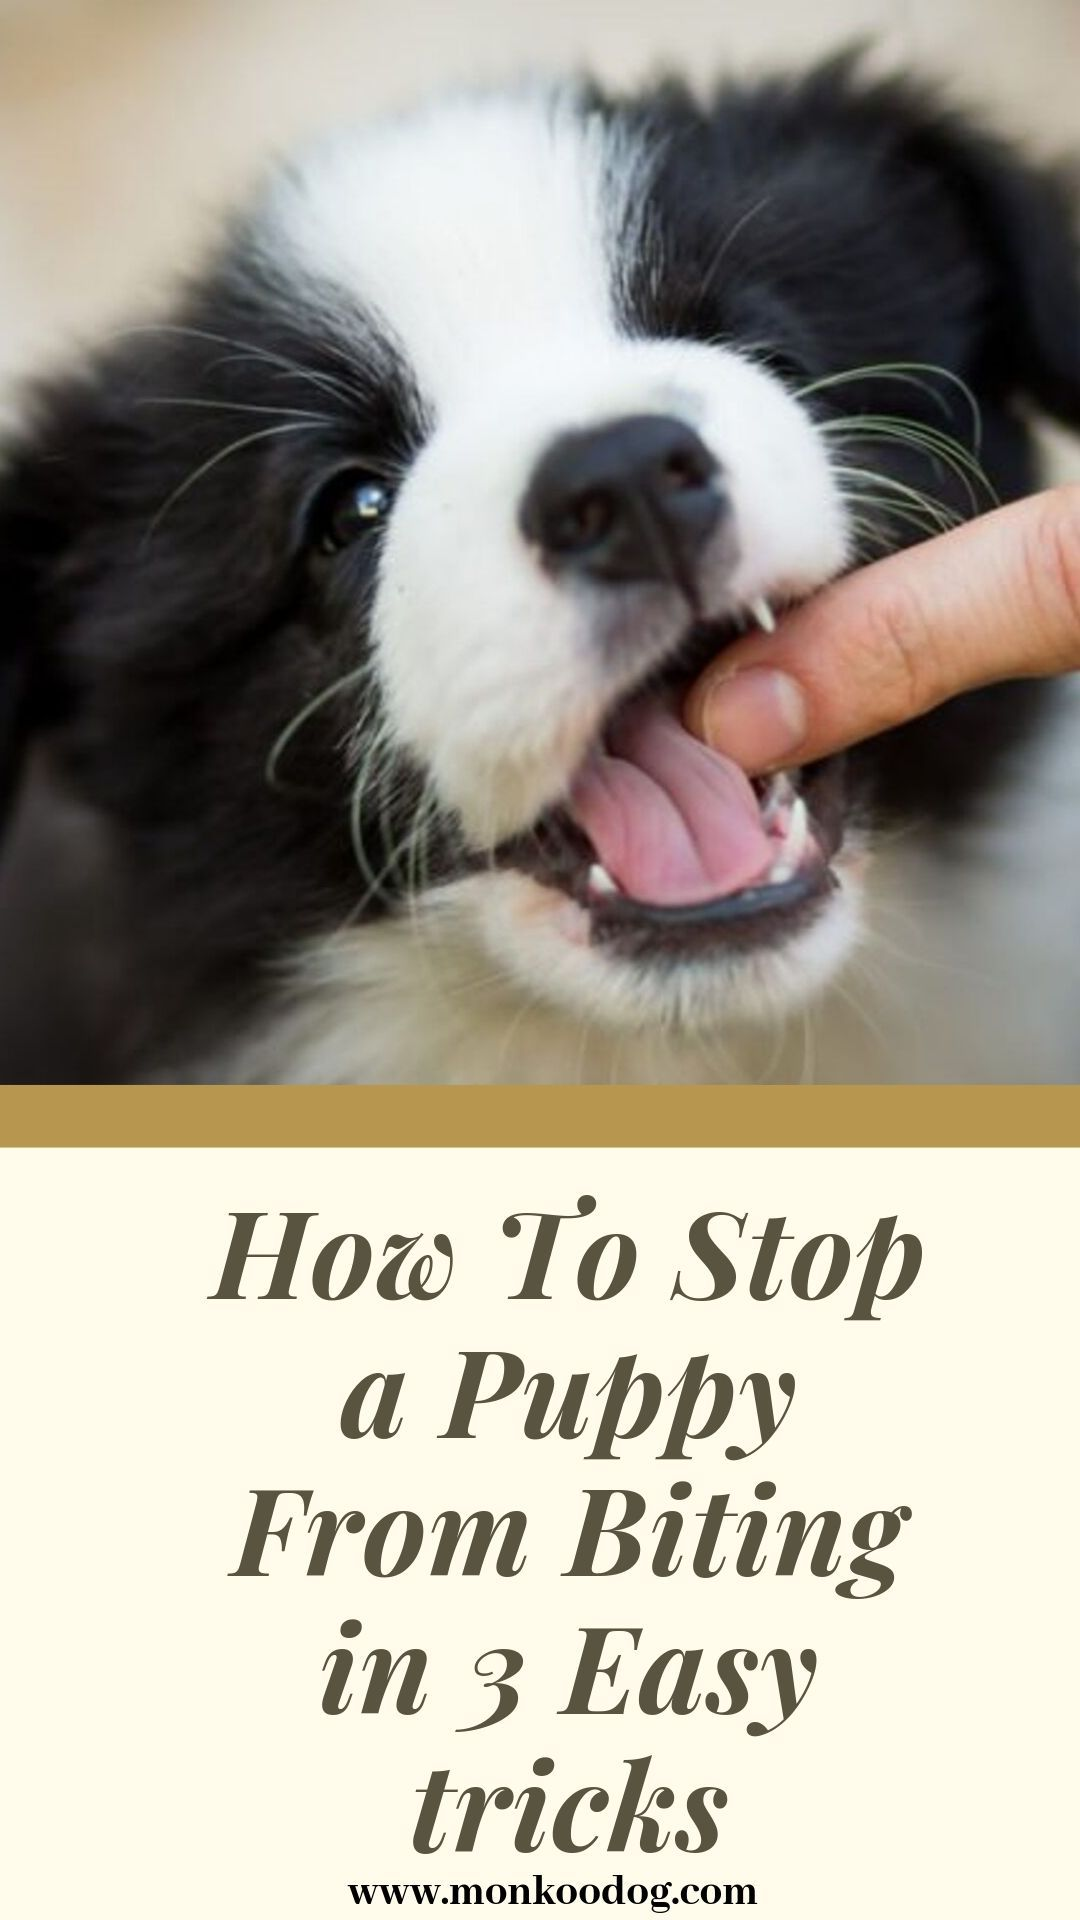 How To Stop A Puppy From Bitting In 3 Easy Tricks Stop Puppy From Biting Puppy Biting Puppies